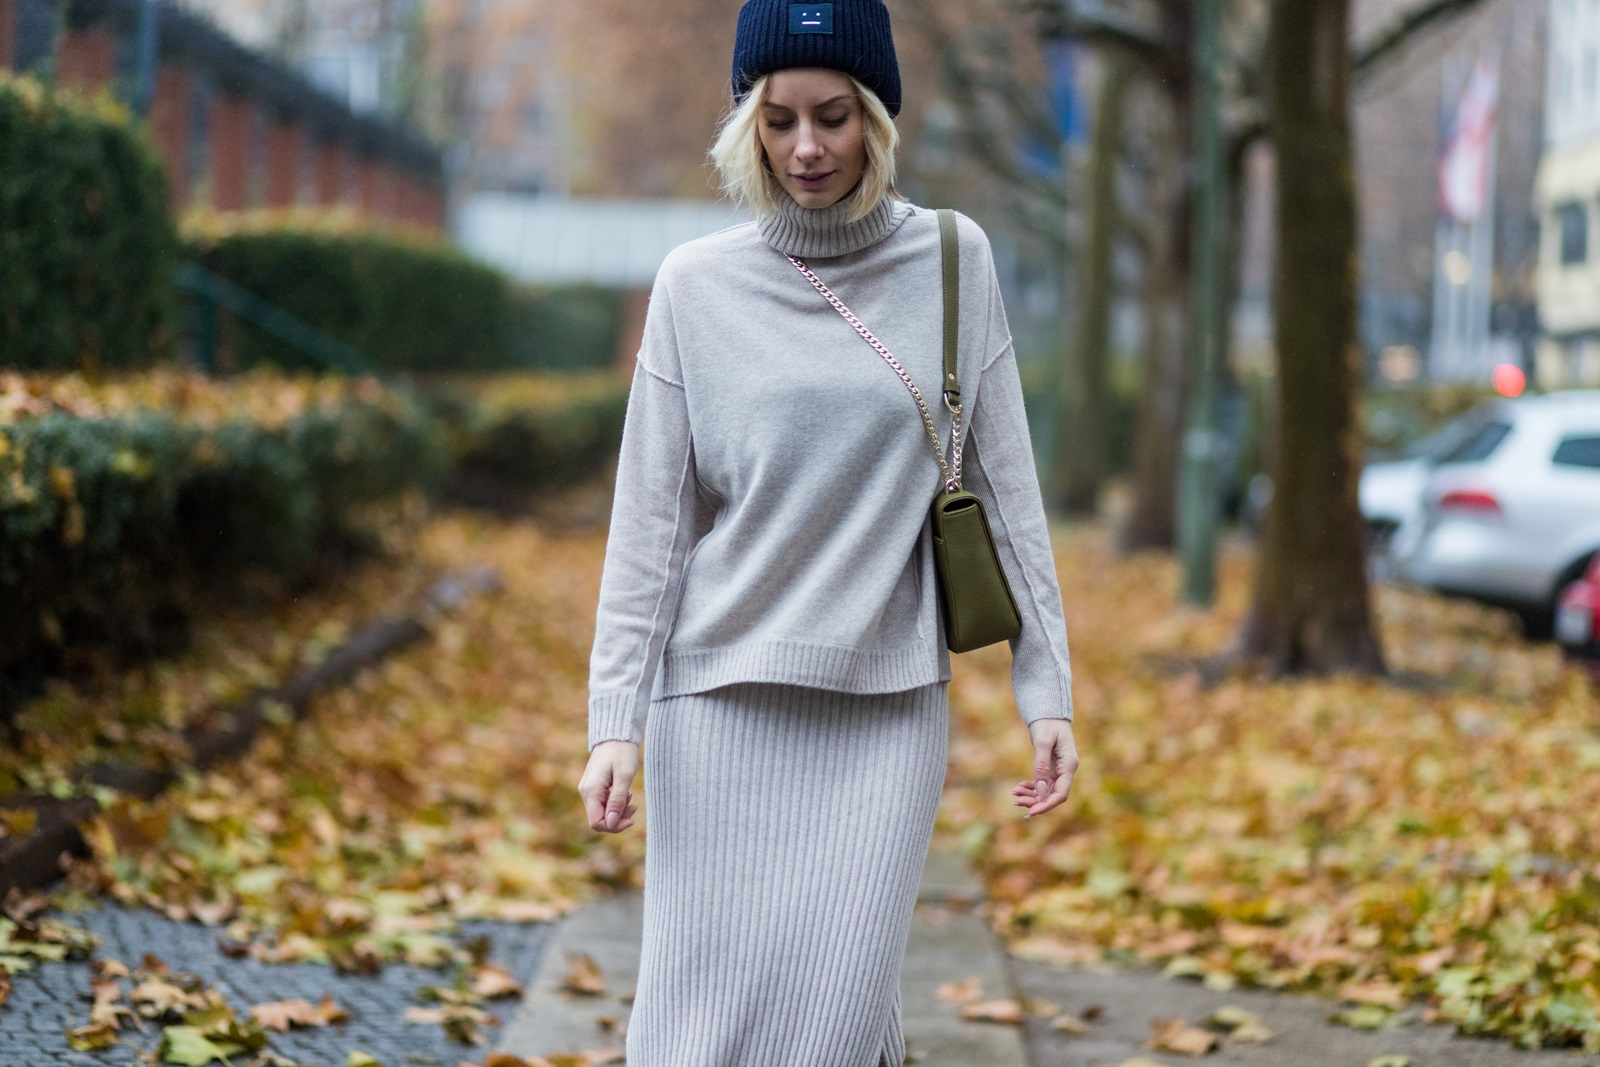 BERLIN, GERMANY - NOVEMBER 16: Lisa Hahnbueck (@lisarvd) wearing Allude Cashmere Turtle Neck Beige Melange, Allude Cashmere Knit Skirt Beige Melange, Aigner Lucy Bag in Moss Green, navy Acne Studios Pansy Beanie Hat on November 16, 2016 in Berlin, Germany. (Photo by Christian Vierig/Getty Images) *** Local Caption *** Lisa Hahnbueck